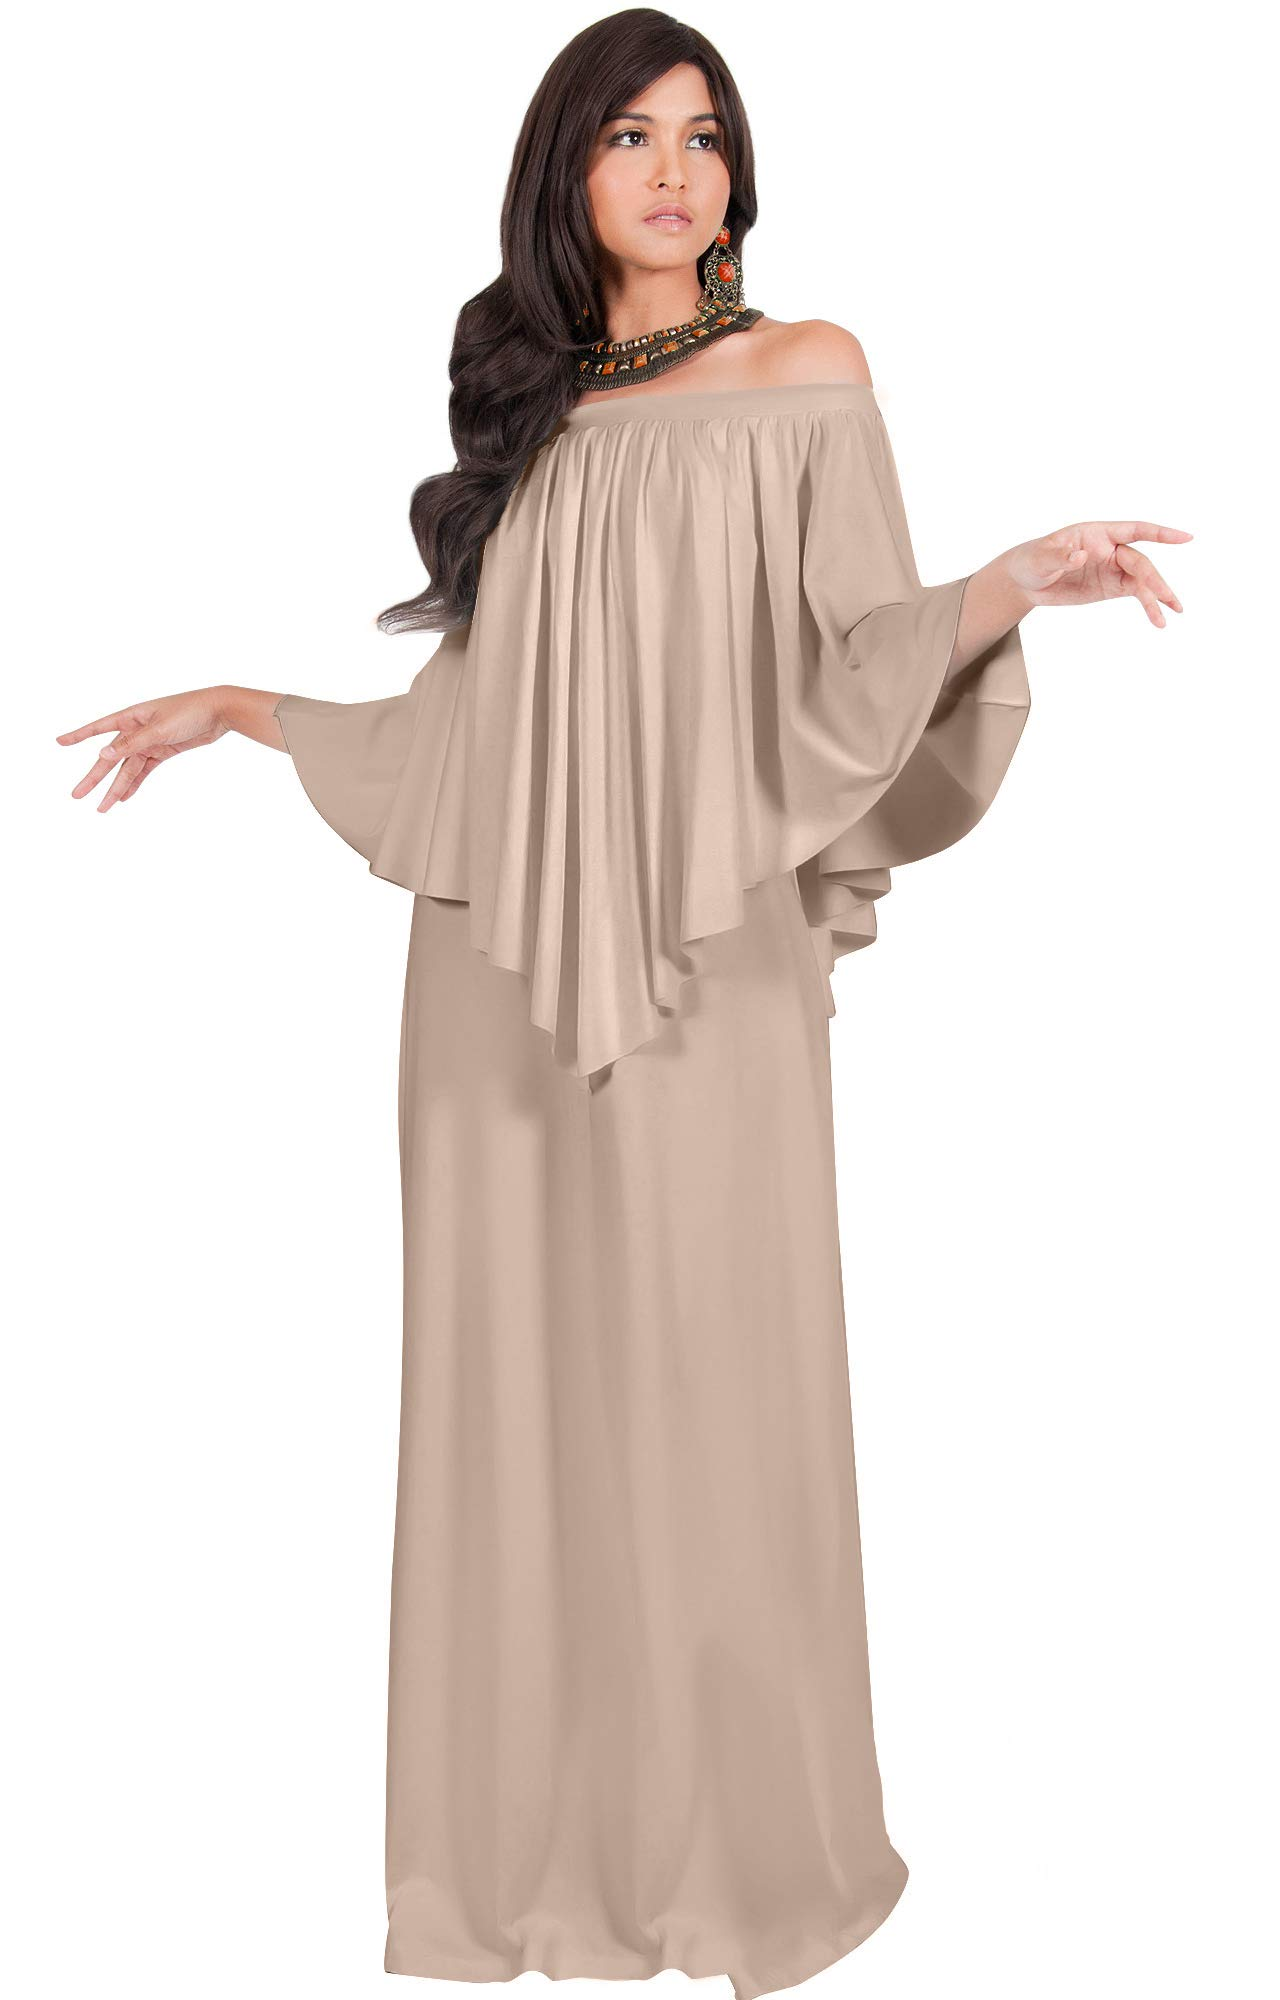 542628b043d KOH KOH Womens Long Strapless Shoulderless Flattering Cocktail Evening Off  The Shoulder Cold Sexy Evening Flowy Formal Slimming Gown Gowns Maxi Dress  ...